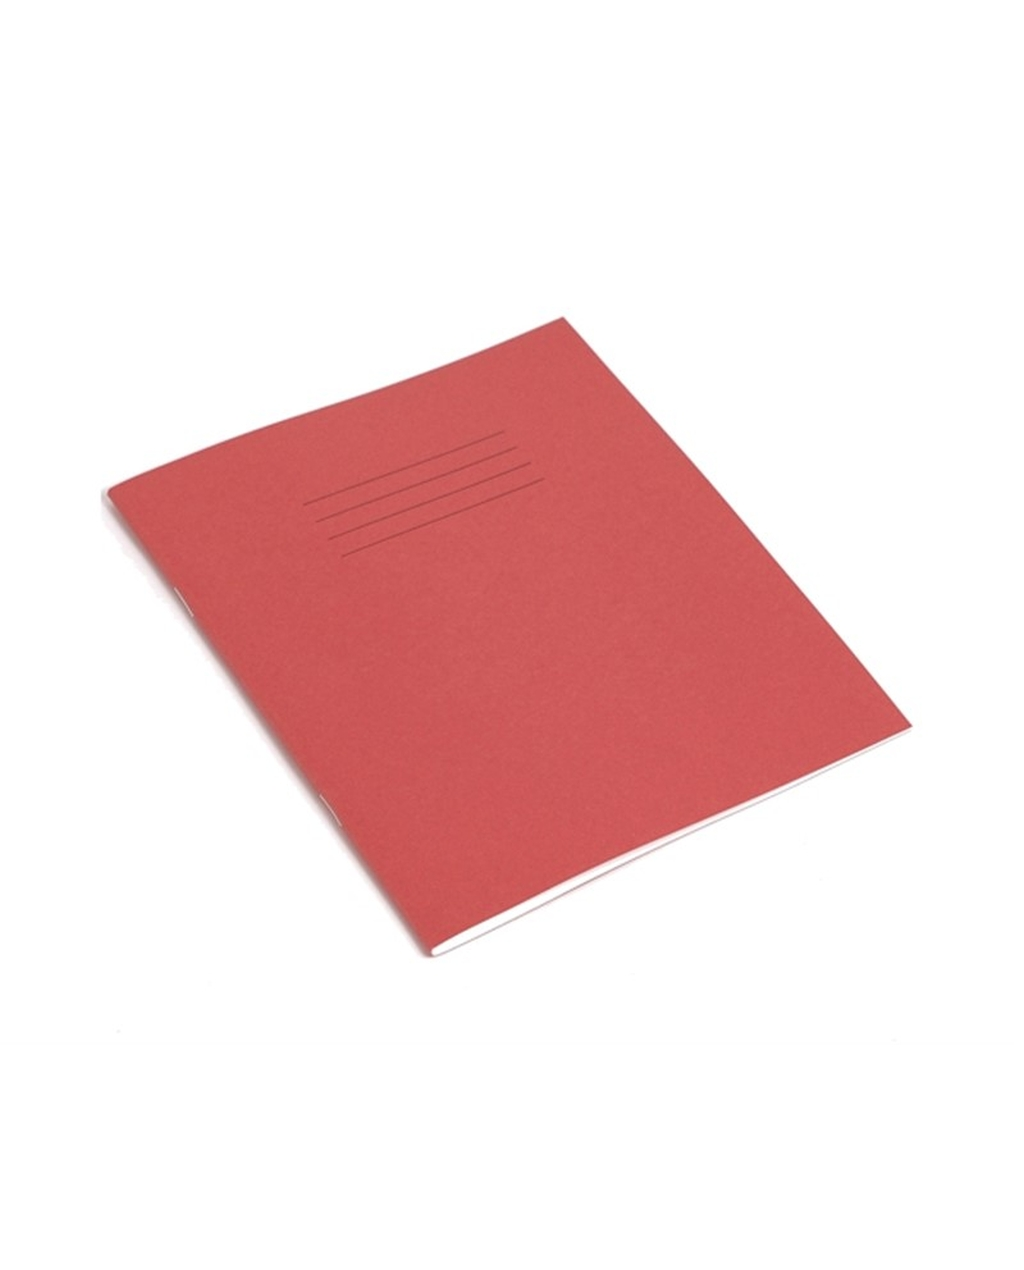 Exercise Book 8 x 6.5 (203 x 165mm) Red Cover 8mm Ruled & Margin 48 Pages